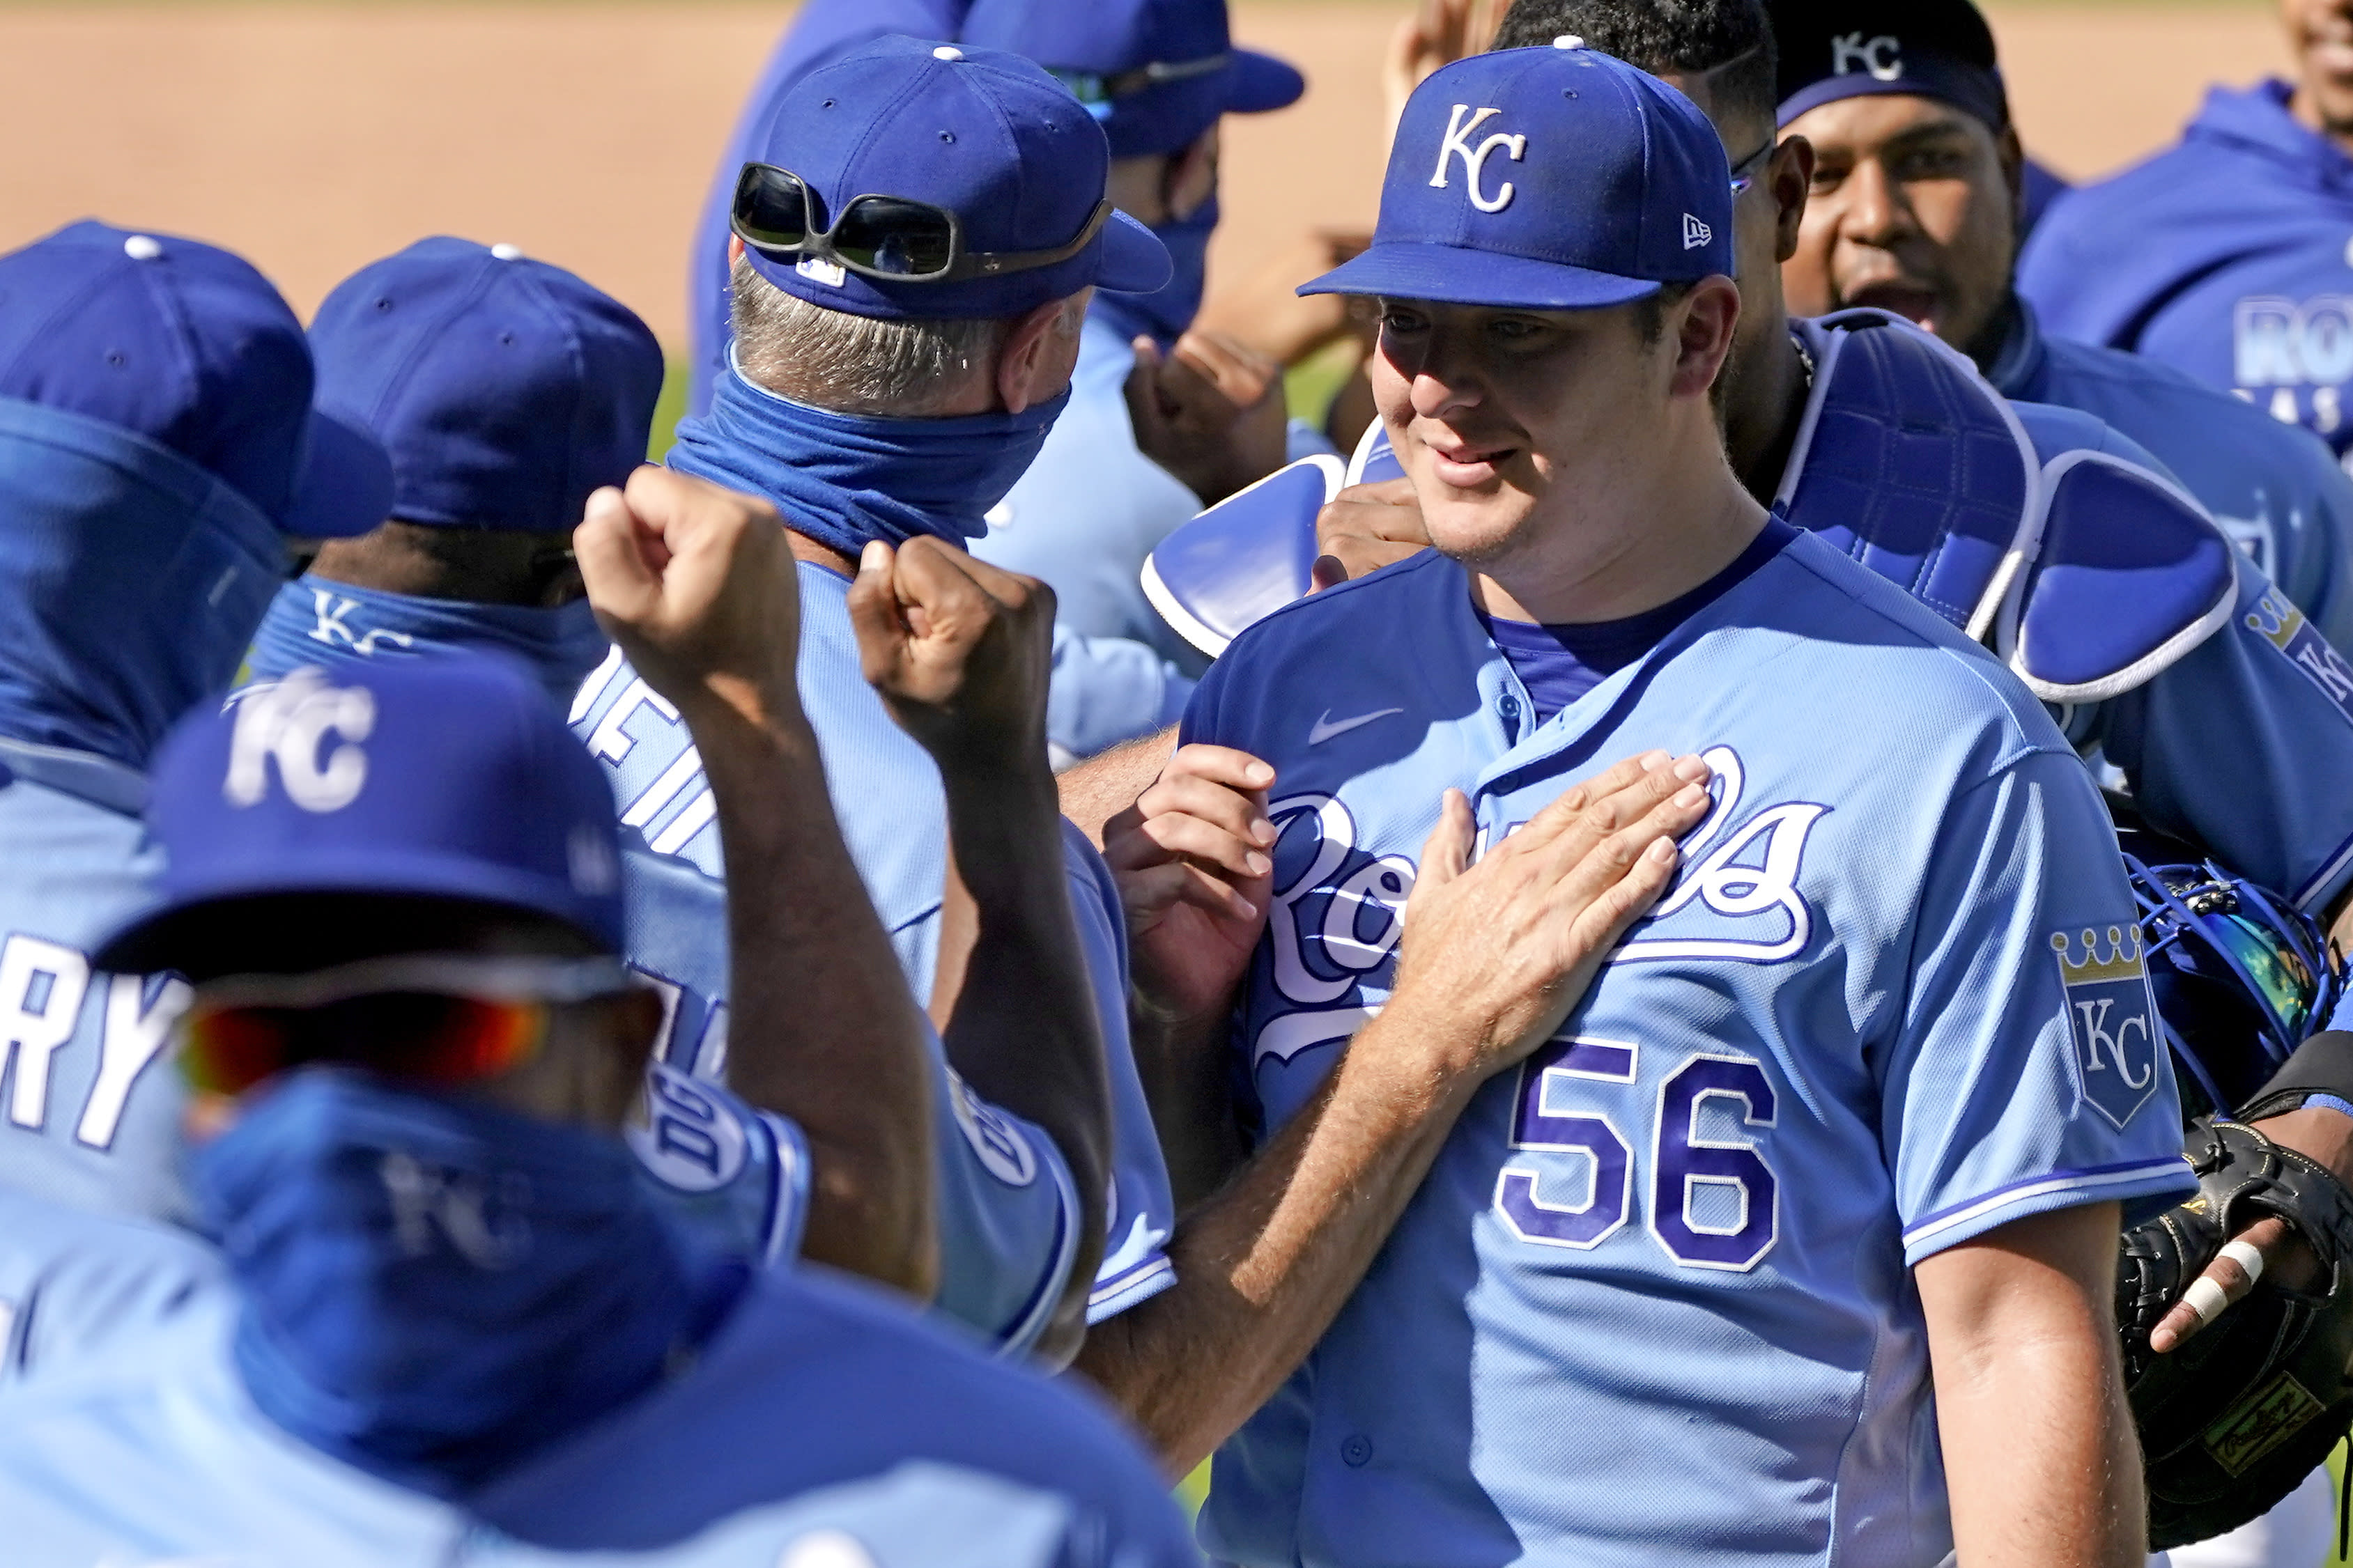 Kansas City Royals starting pitcher Brad Keller (56) celebrates with teammates after their baseball game against the Pittsburgh Pirates Sunday, Sept. 13, 2020, in Kansas City, Mo. Keller pitched a complete game and shut out the Pirates. (AP Photo/Charlie Riedel)